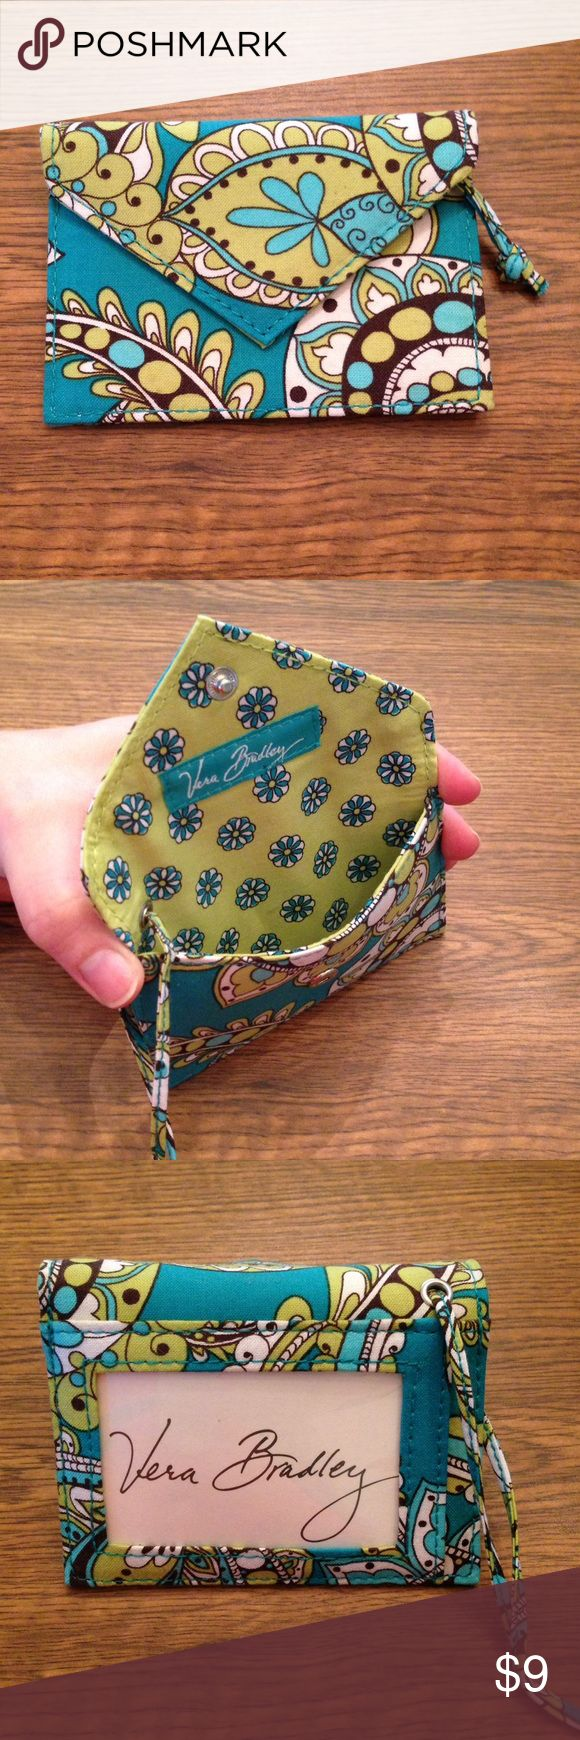 """NWOT Vera Bradley luggage tag Vera Bradley luggage tag in Peacock pattern. Measures 4"""" x 3"""" x 1/2"""". Has thin strap to attach to luggage. Card pocket on the outside to put name/address. Vera Bradley Bags Travel Bags"""